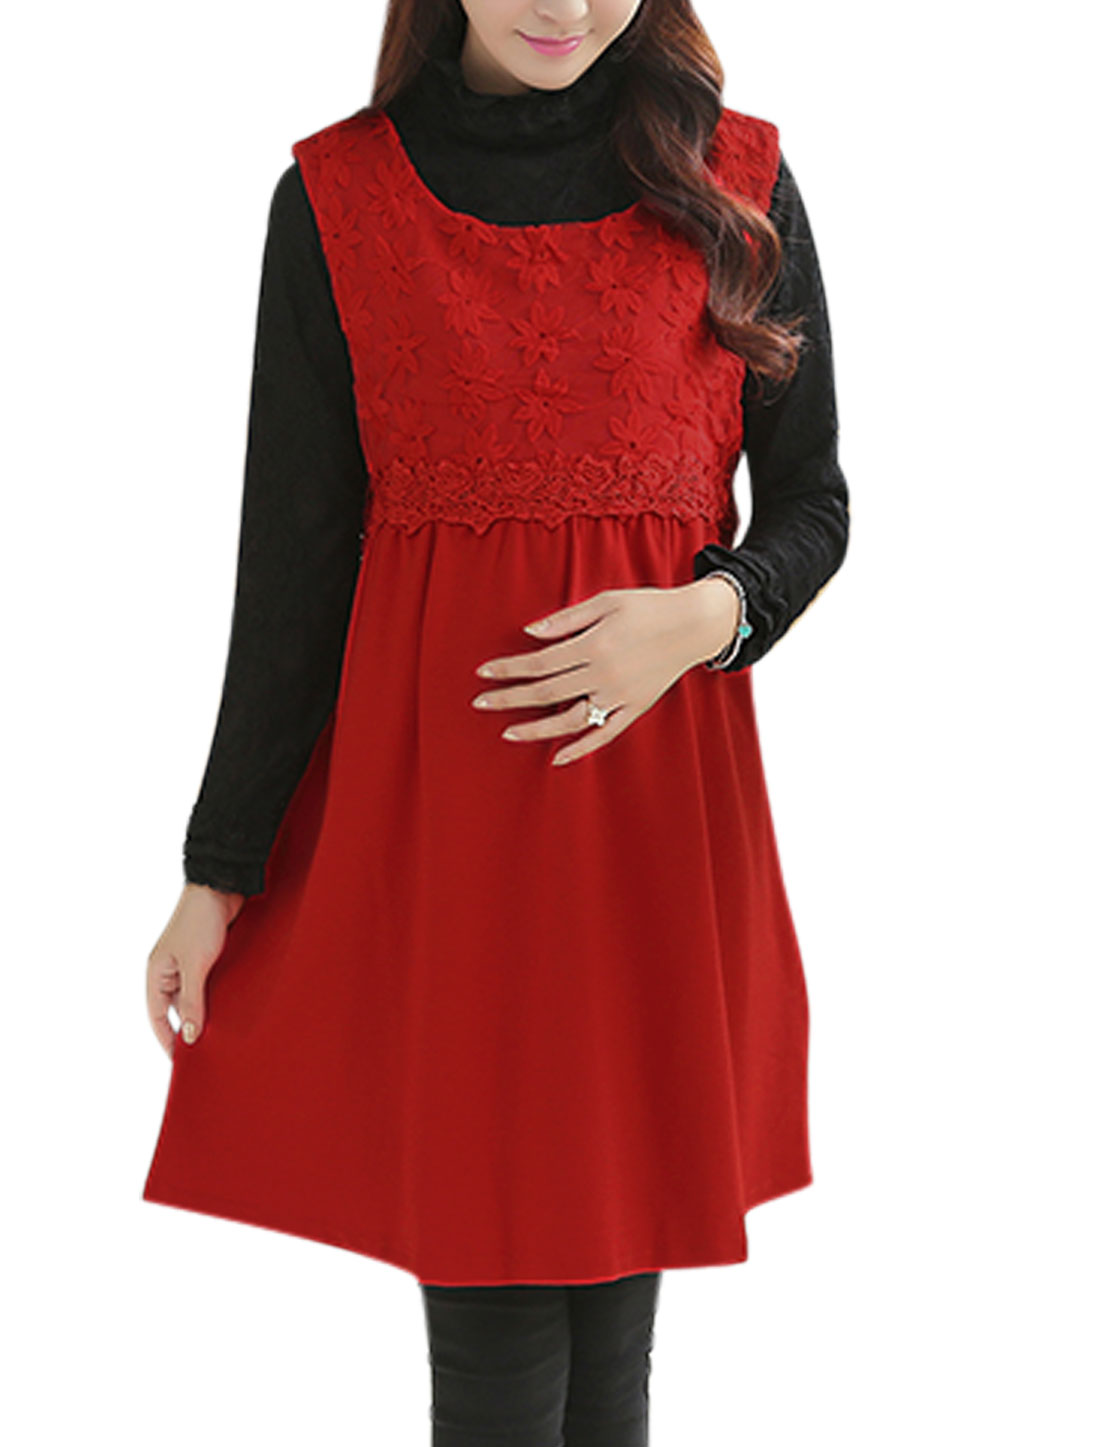 Maternity Lace Panel Design Sleeveless Pullover Red Dress L